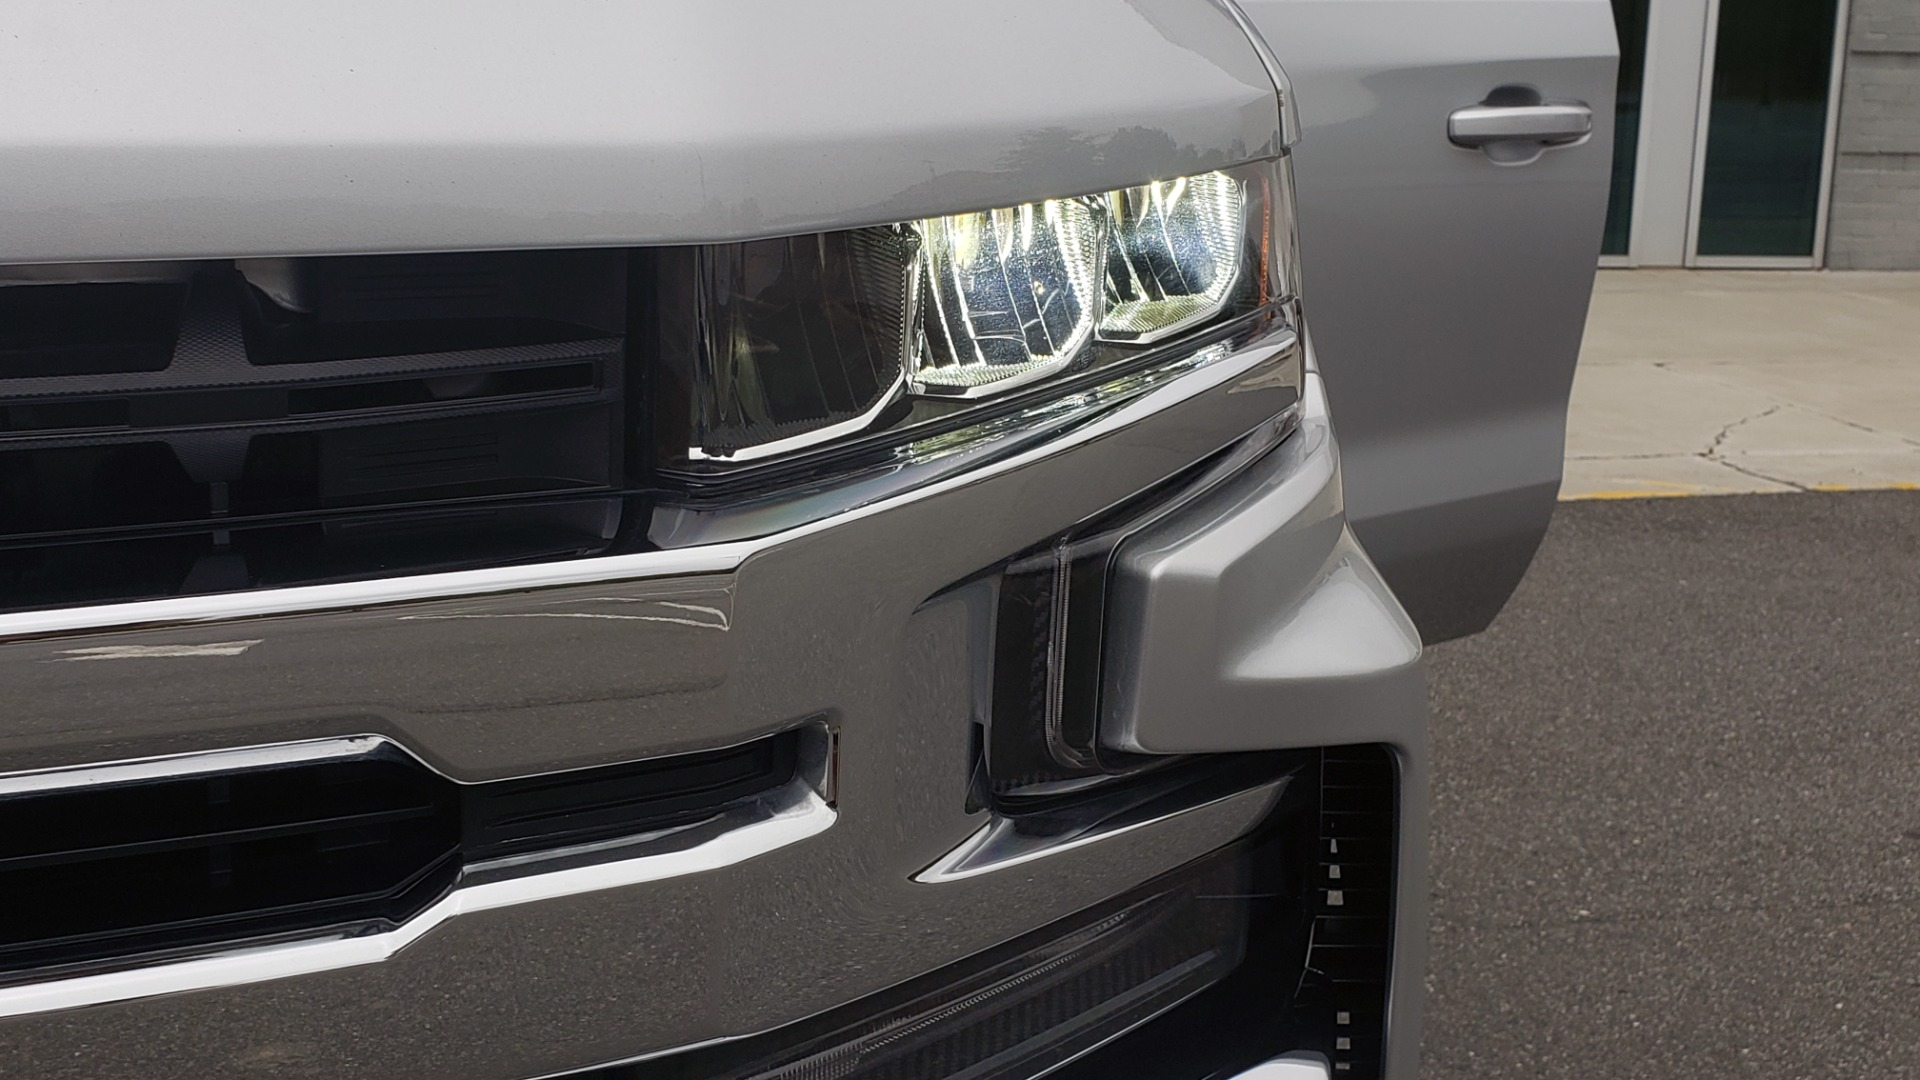 Used 2020 Chevrolet SILVERADO 1500 LT 4WD DOUBLECAB 147 WB / 5.3L V8 / BEDLINER / REARVIEW for sale $41,995 at Formula Imports in Charlotte NC 28227 21